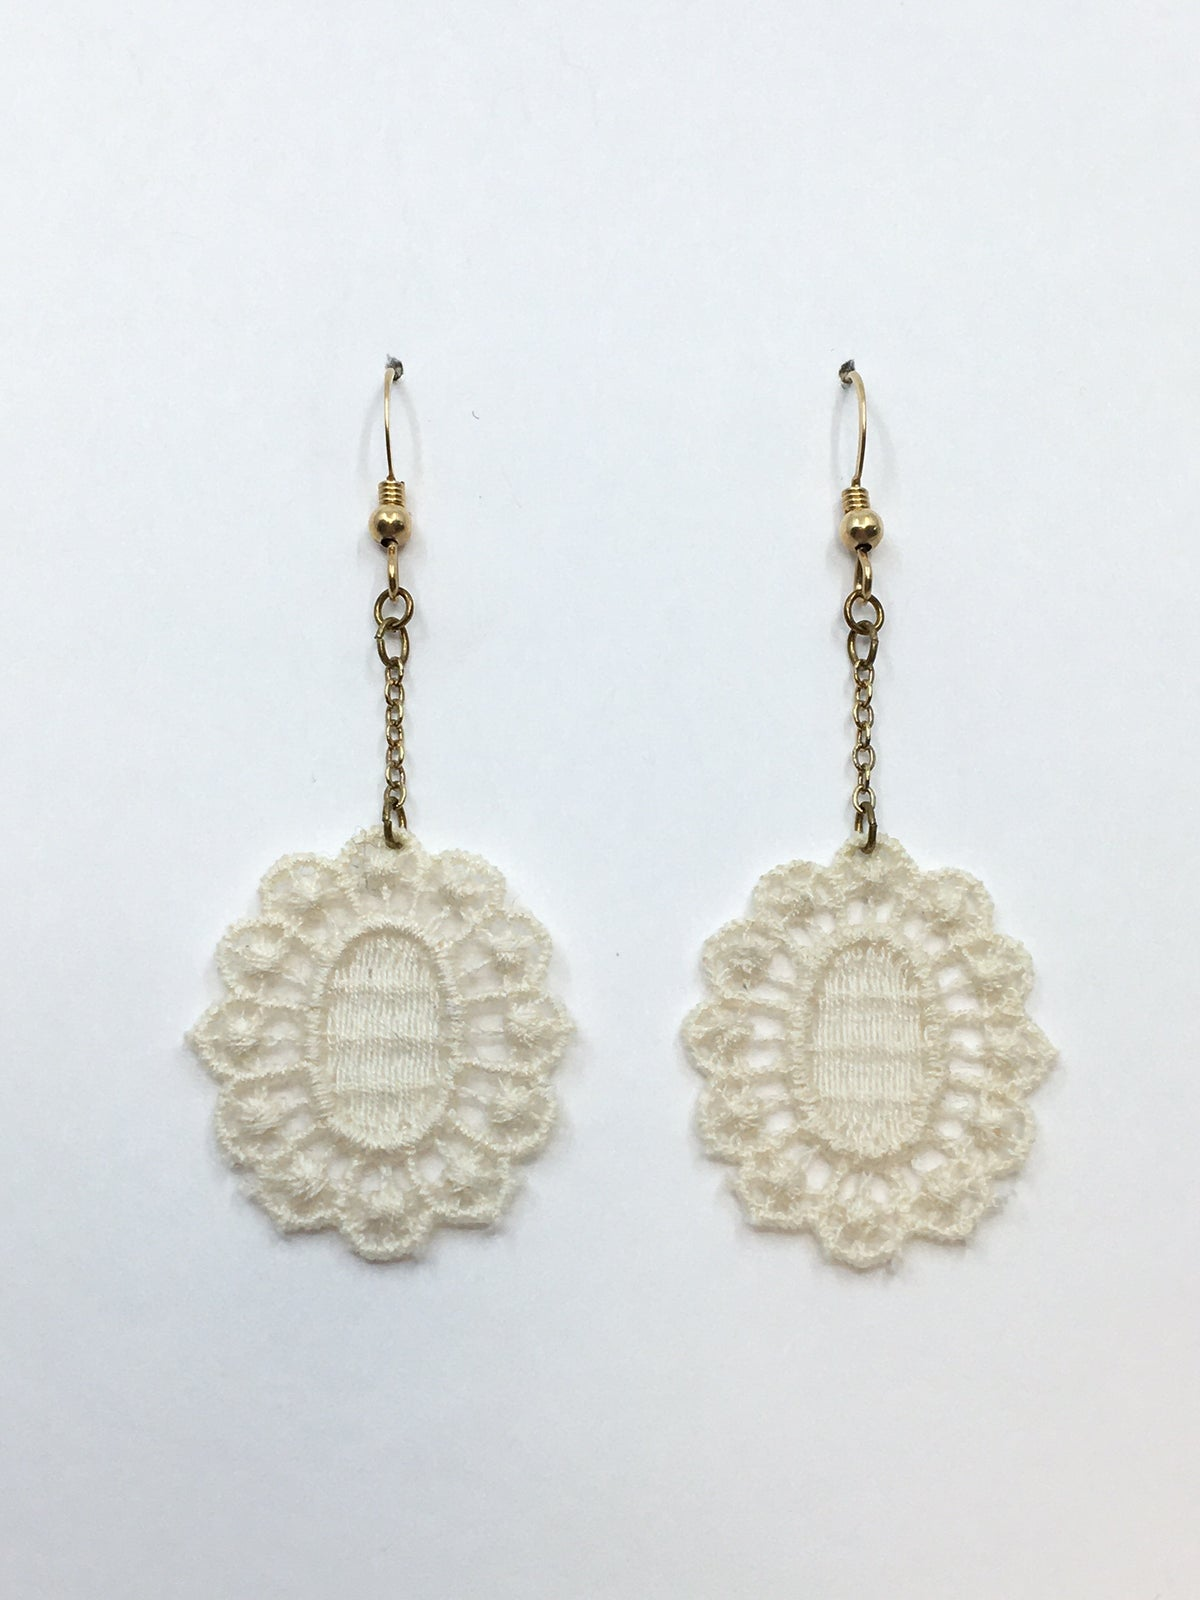 **35% Off** Cotton Lace Earrings by Paz Sintes